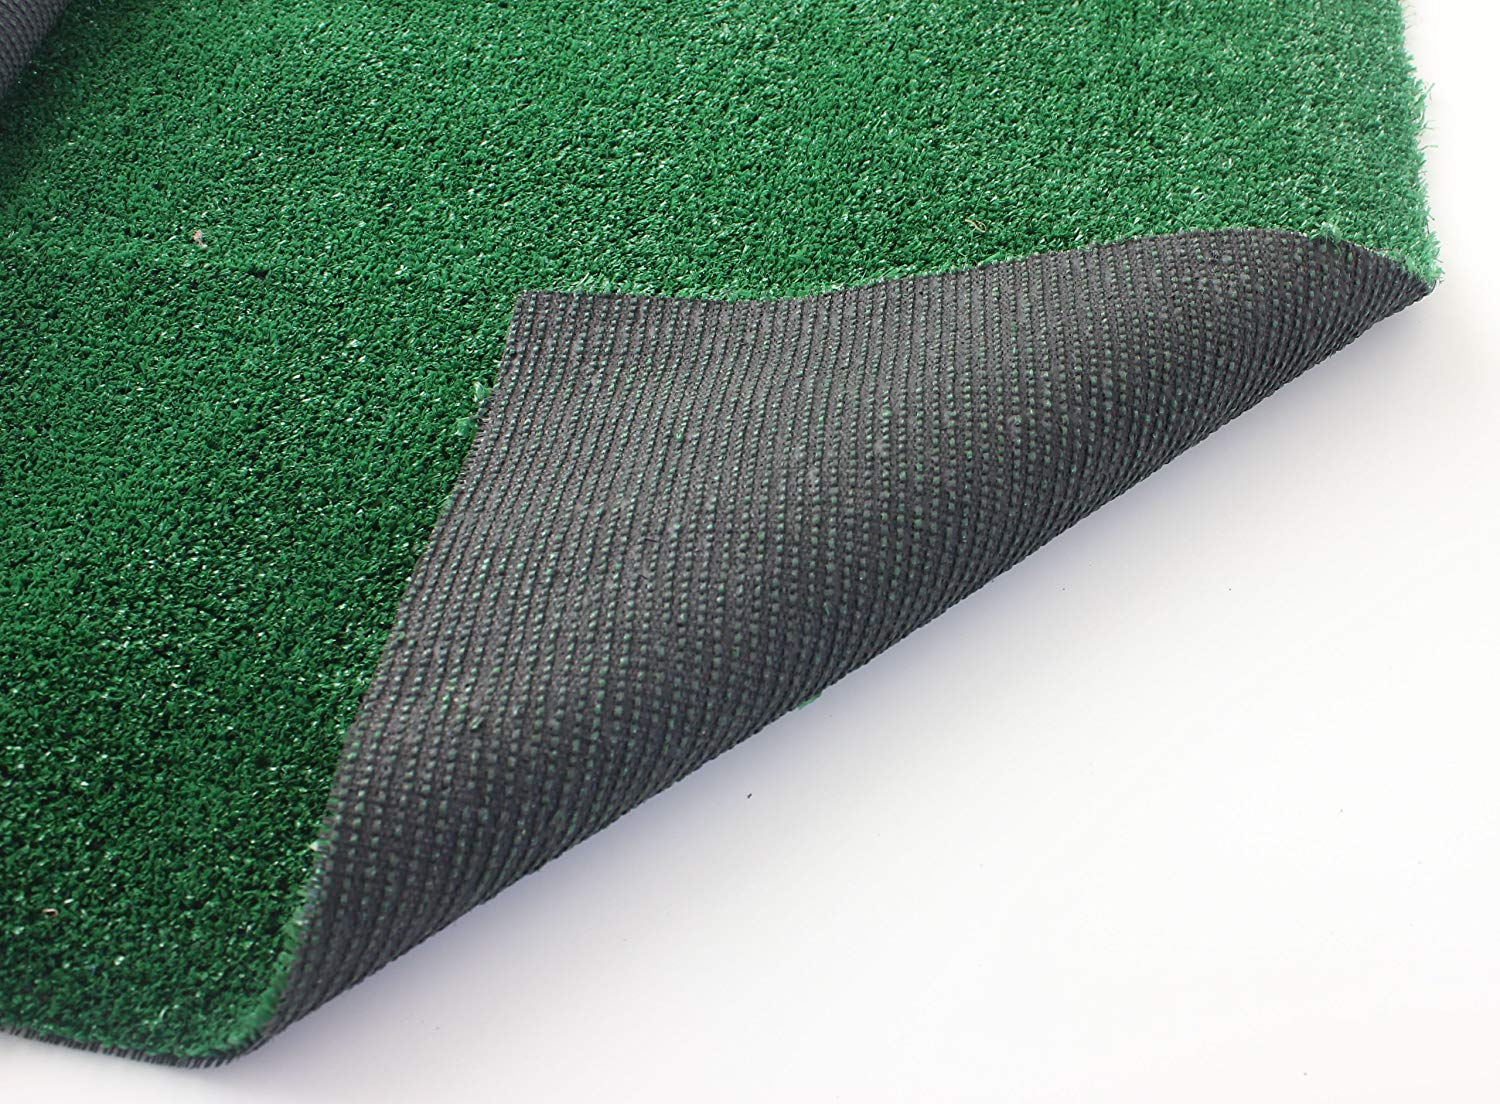 green carpet amazon.com : 12u0027x9u0027 lawn green indoor/outdoor artificial turf grass carpet  rug with EIRMGNZ